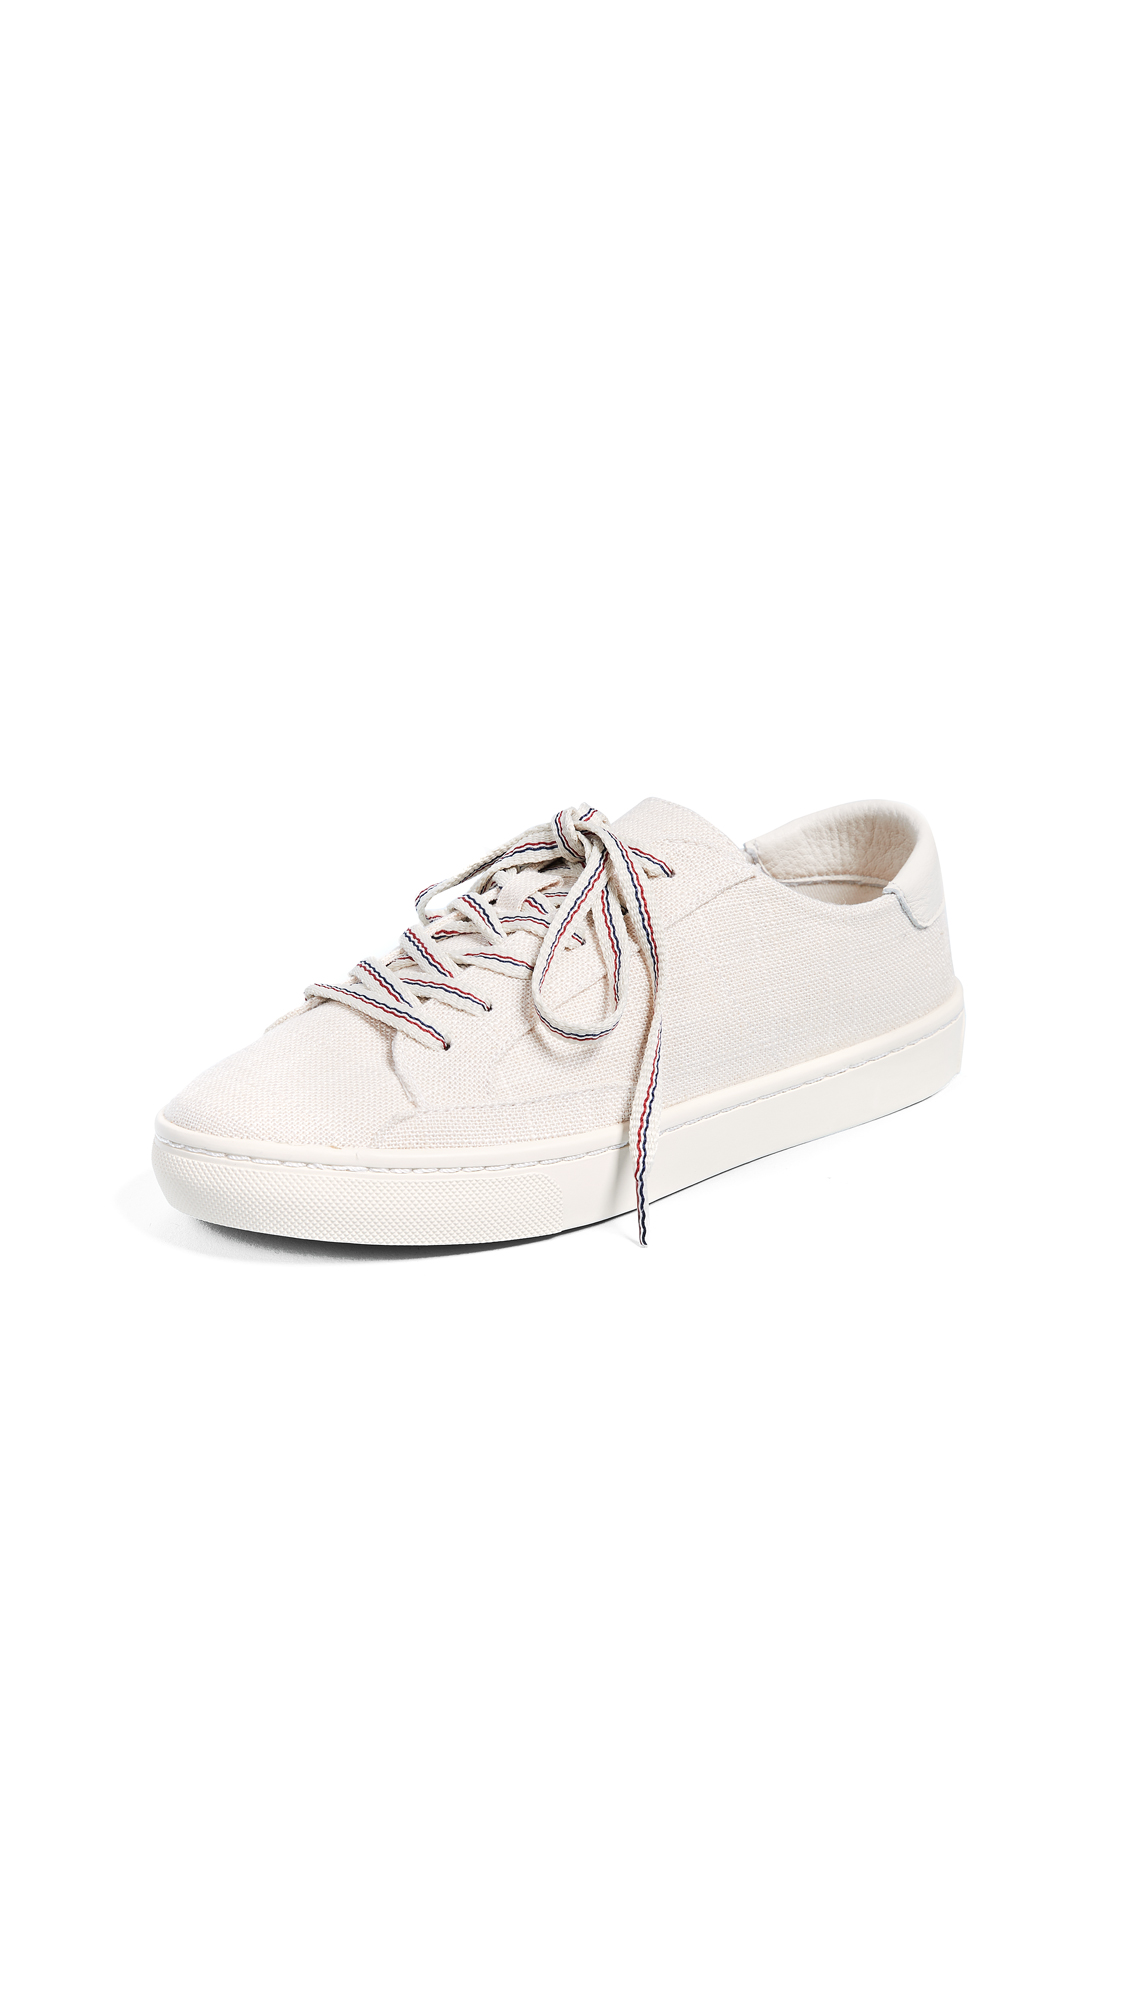 IBIZA LACE UP SNEAKERS